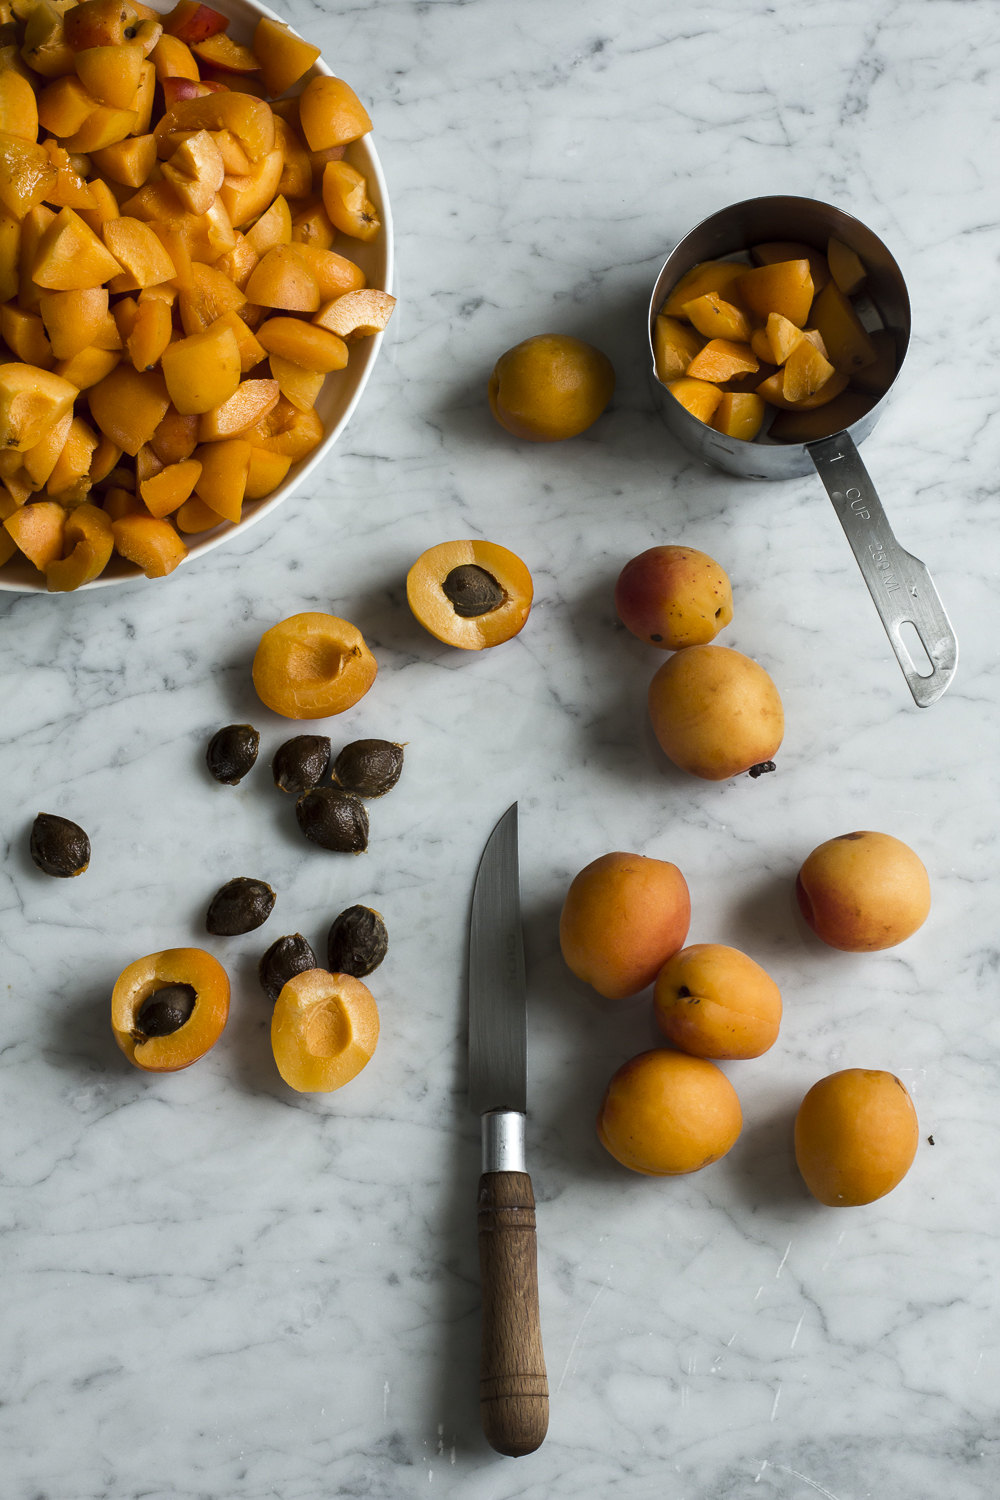 Chopping apricots for Apricot Sultana Chutney  © 2014 Helena McMurdo